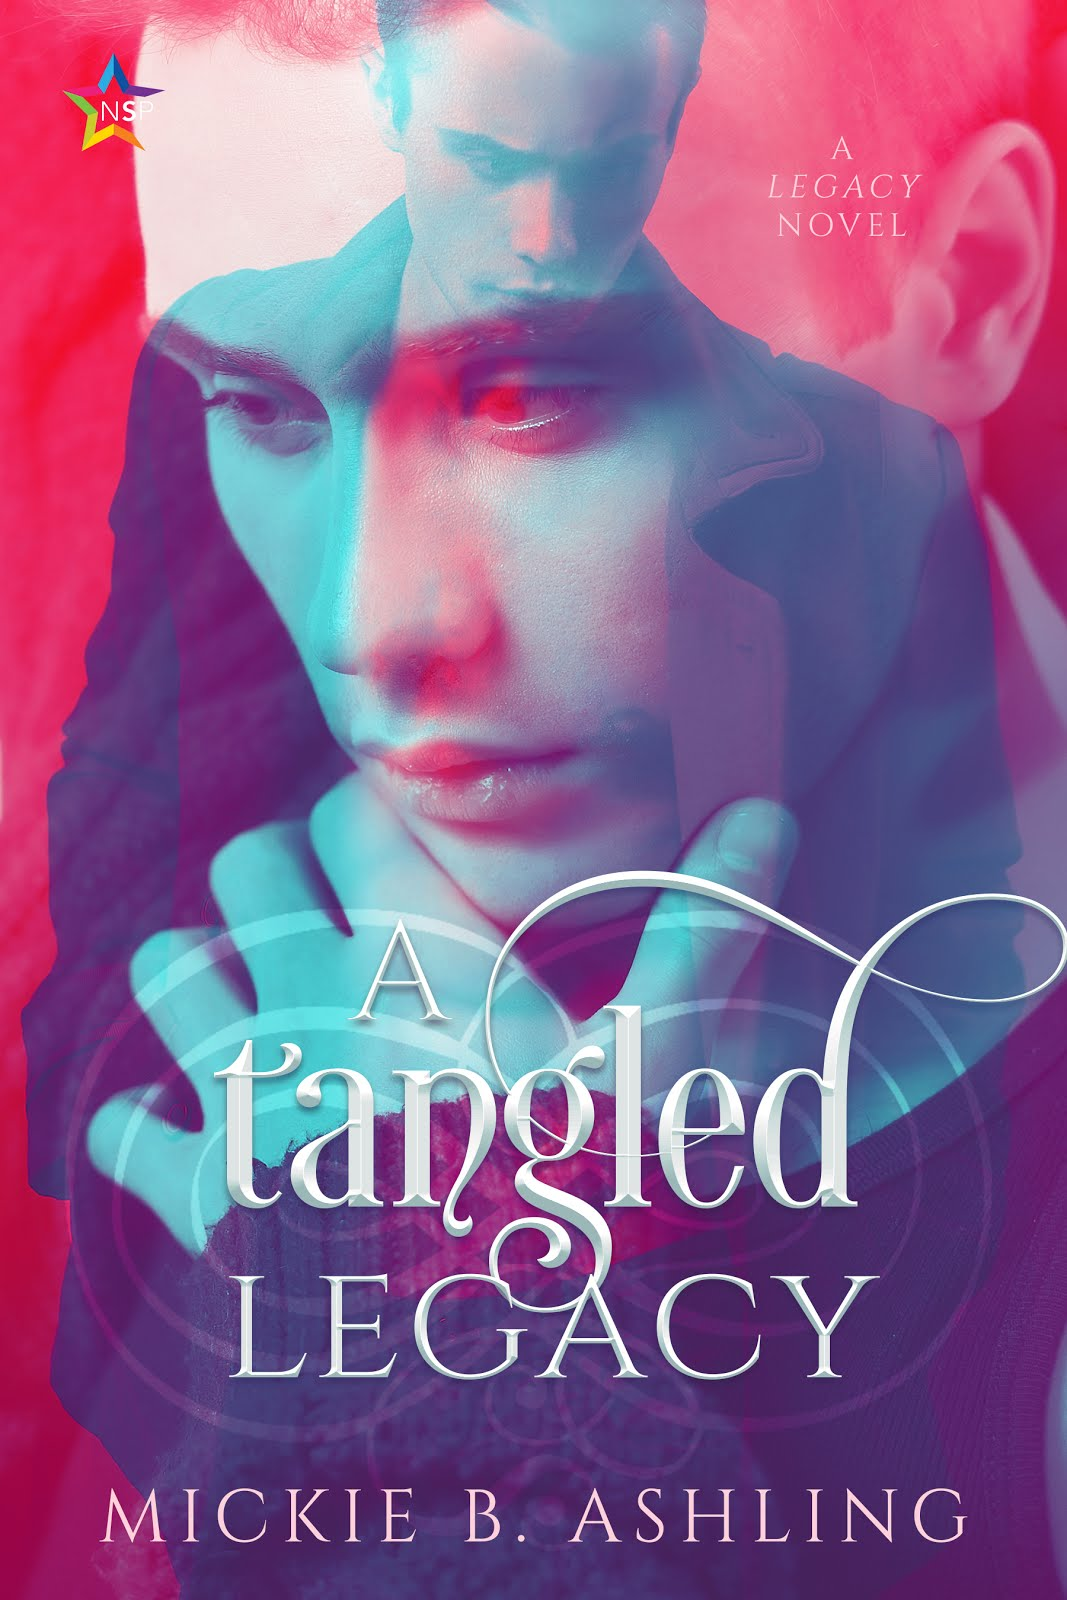 A Tangled Legacy